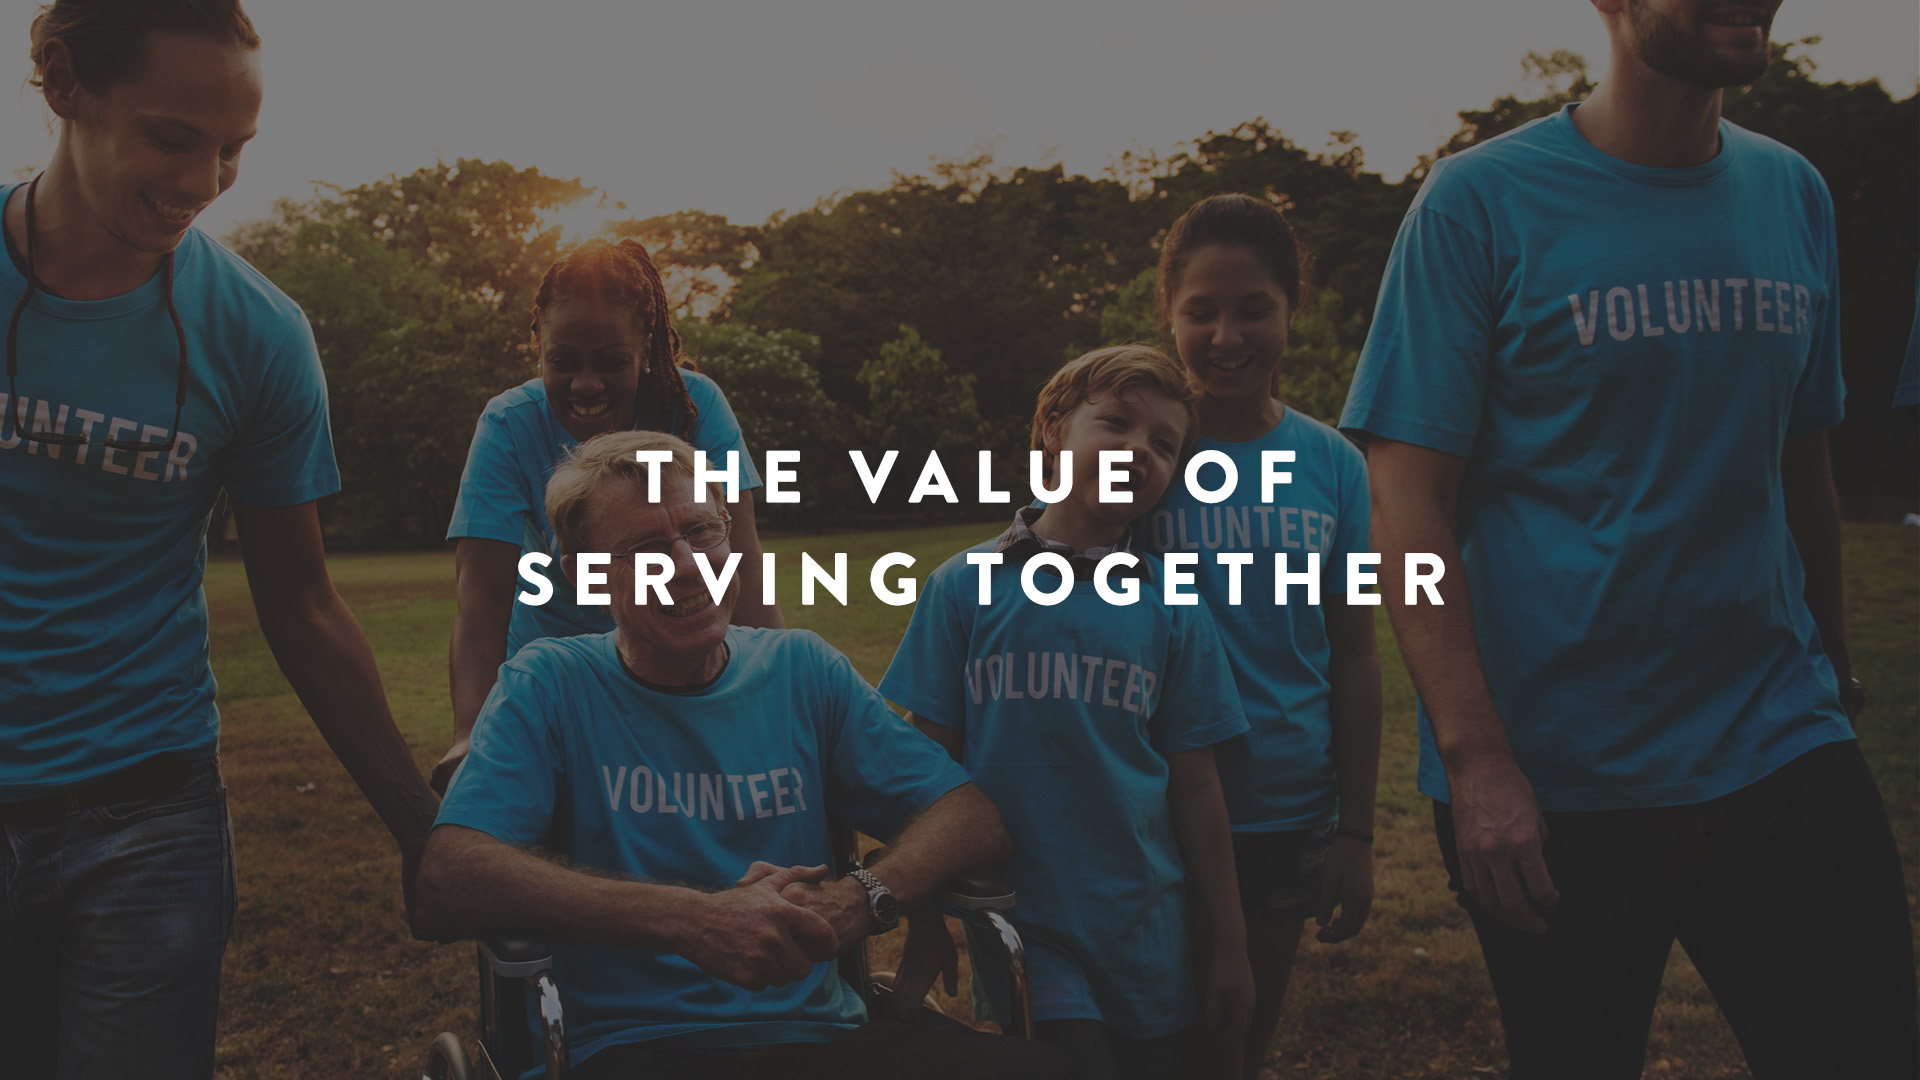 Bring the Family: The Value of Serving Together